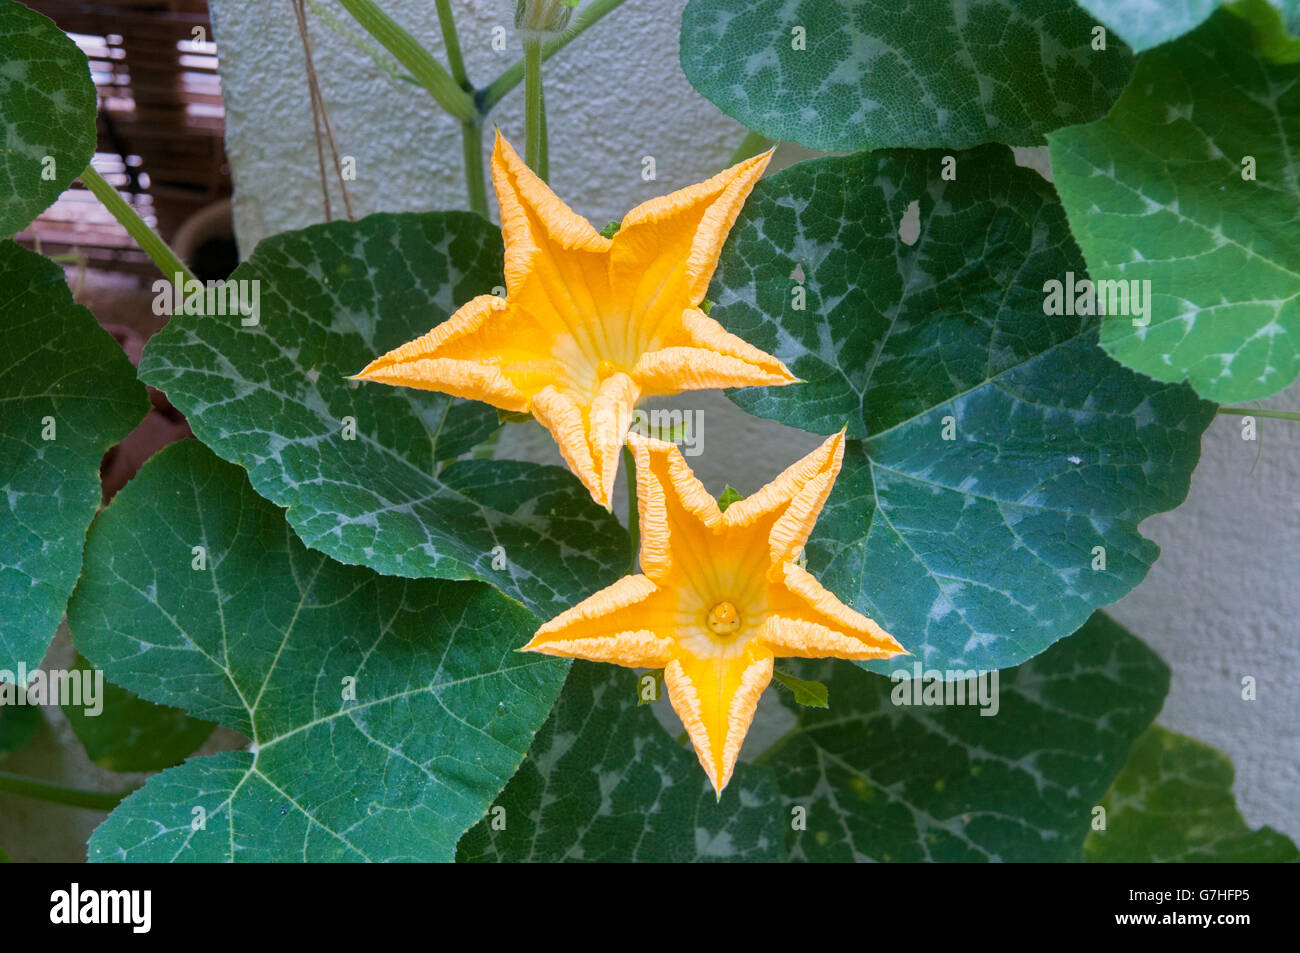 Large yellow flowers stock photos large yellow flowers stock pumpkin plant with large yellow flowers grows in a garden stock image mightylinksfo